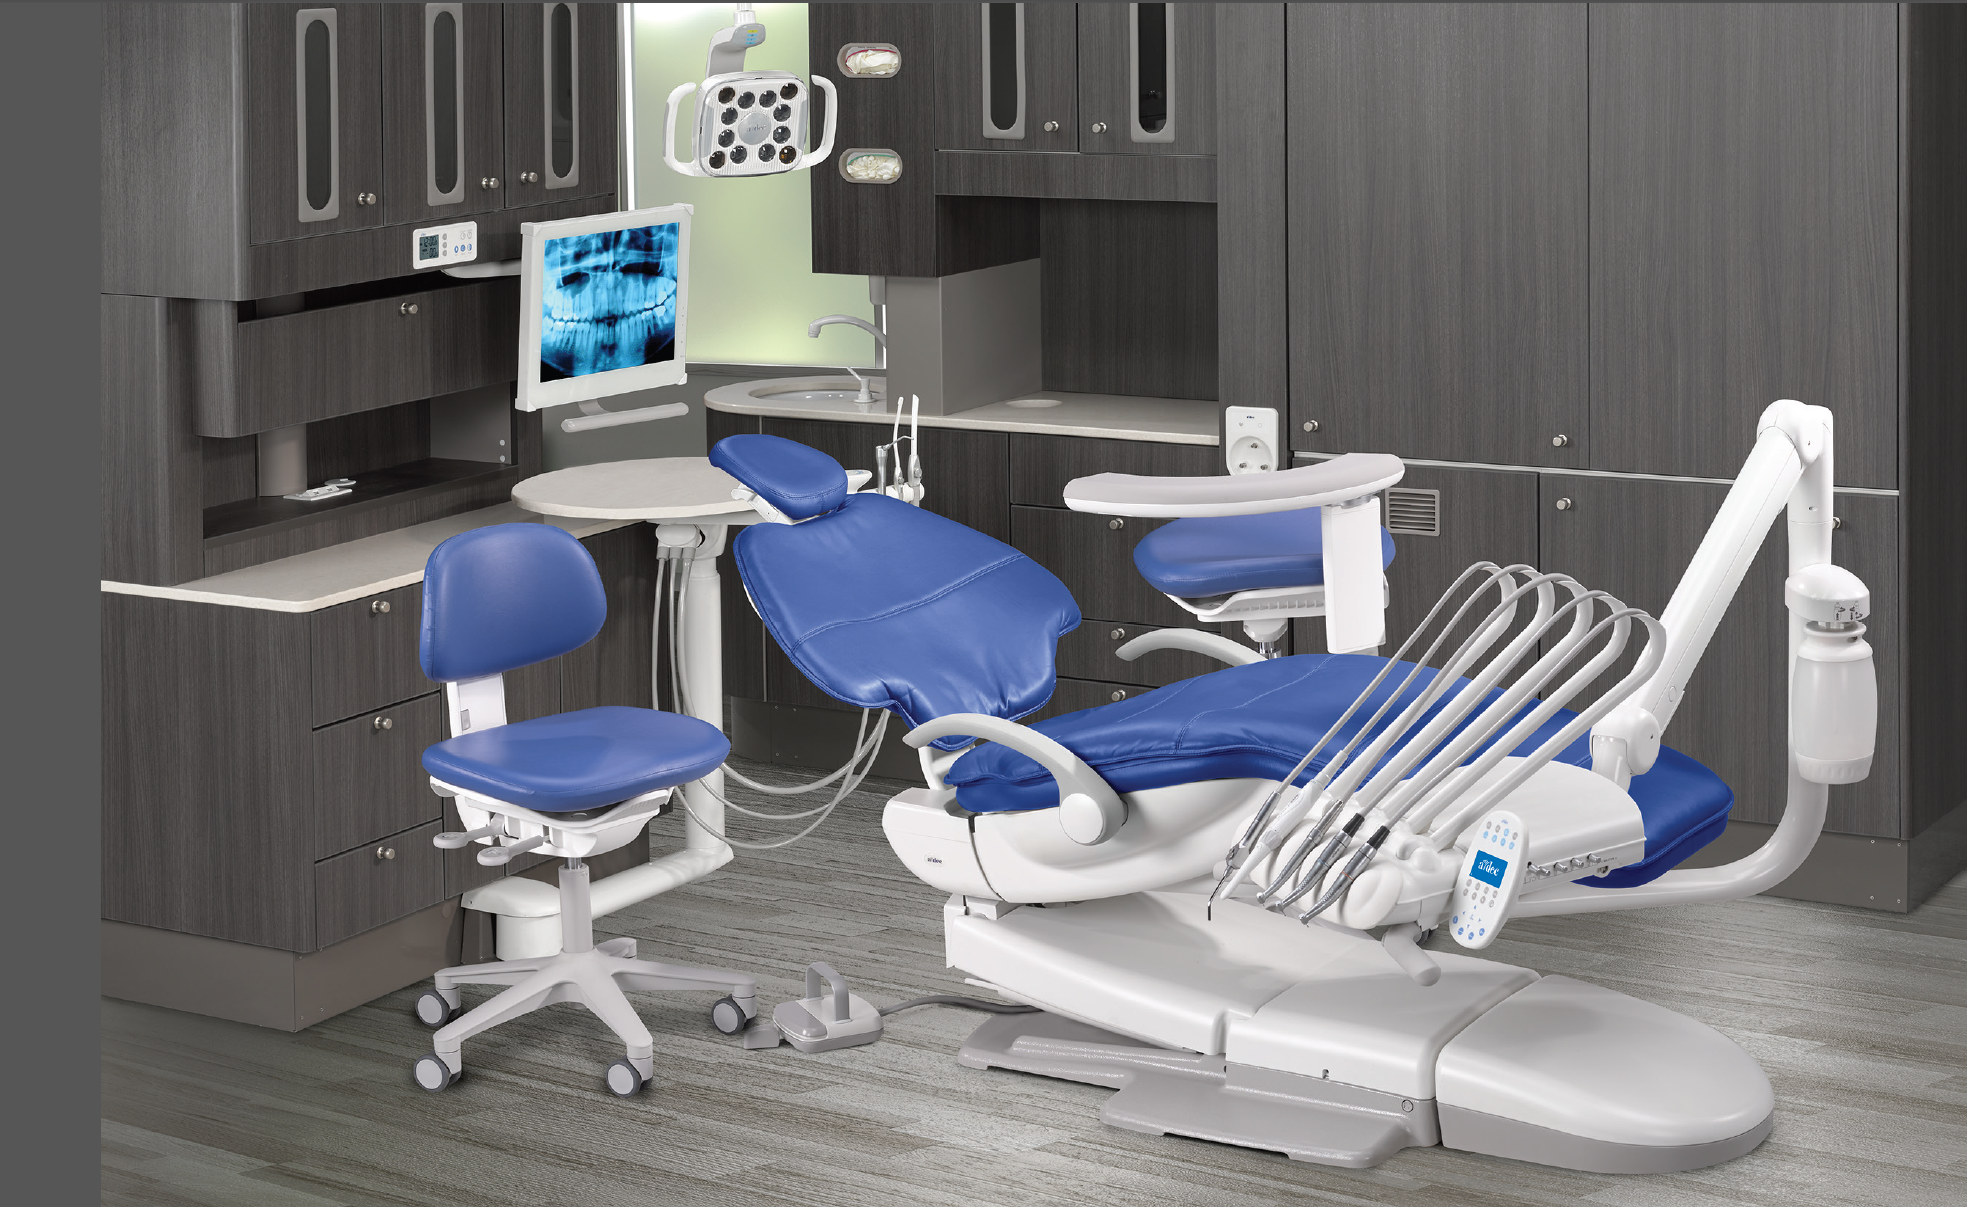 Dental Supplies & Equipment | Order Supplies Online | Nashville